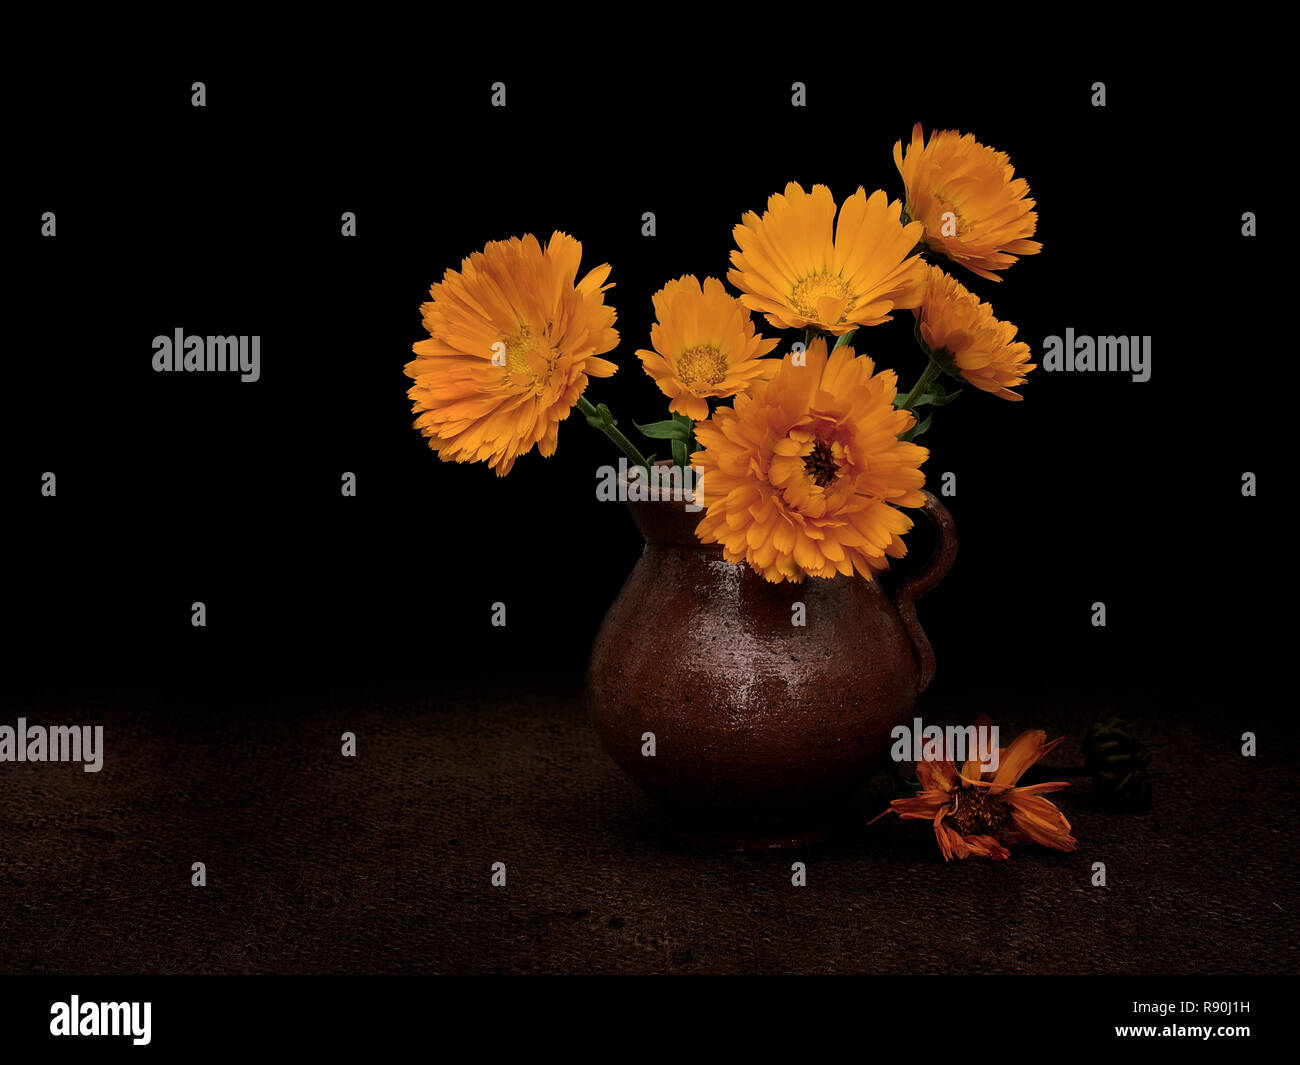 Fading marigolds, time concept, light painting still life. - Stock Image